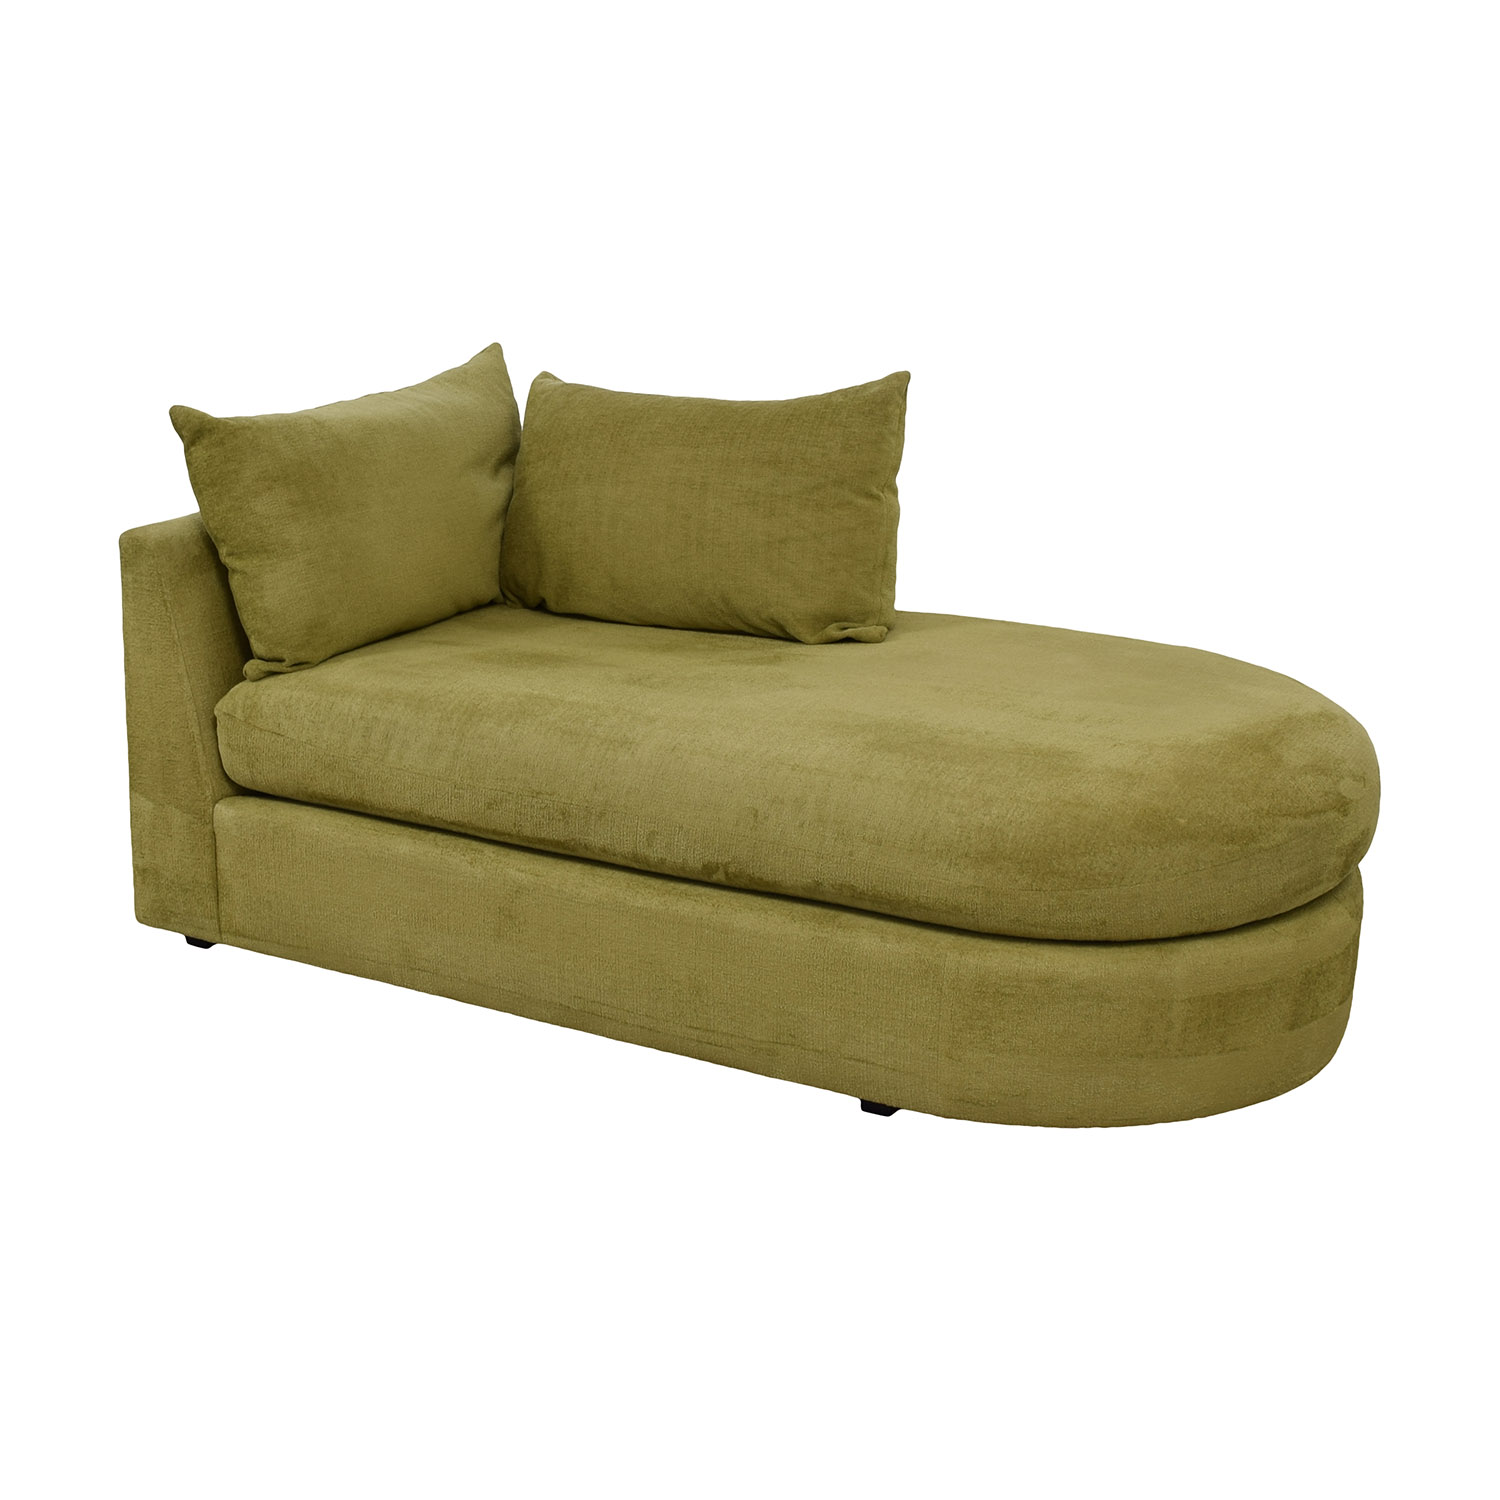 shop Swaim Furniture Kaleidoscope Green Chaise Lounge Swaim Furniture